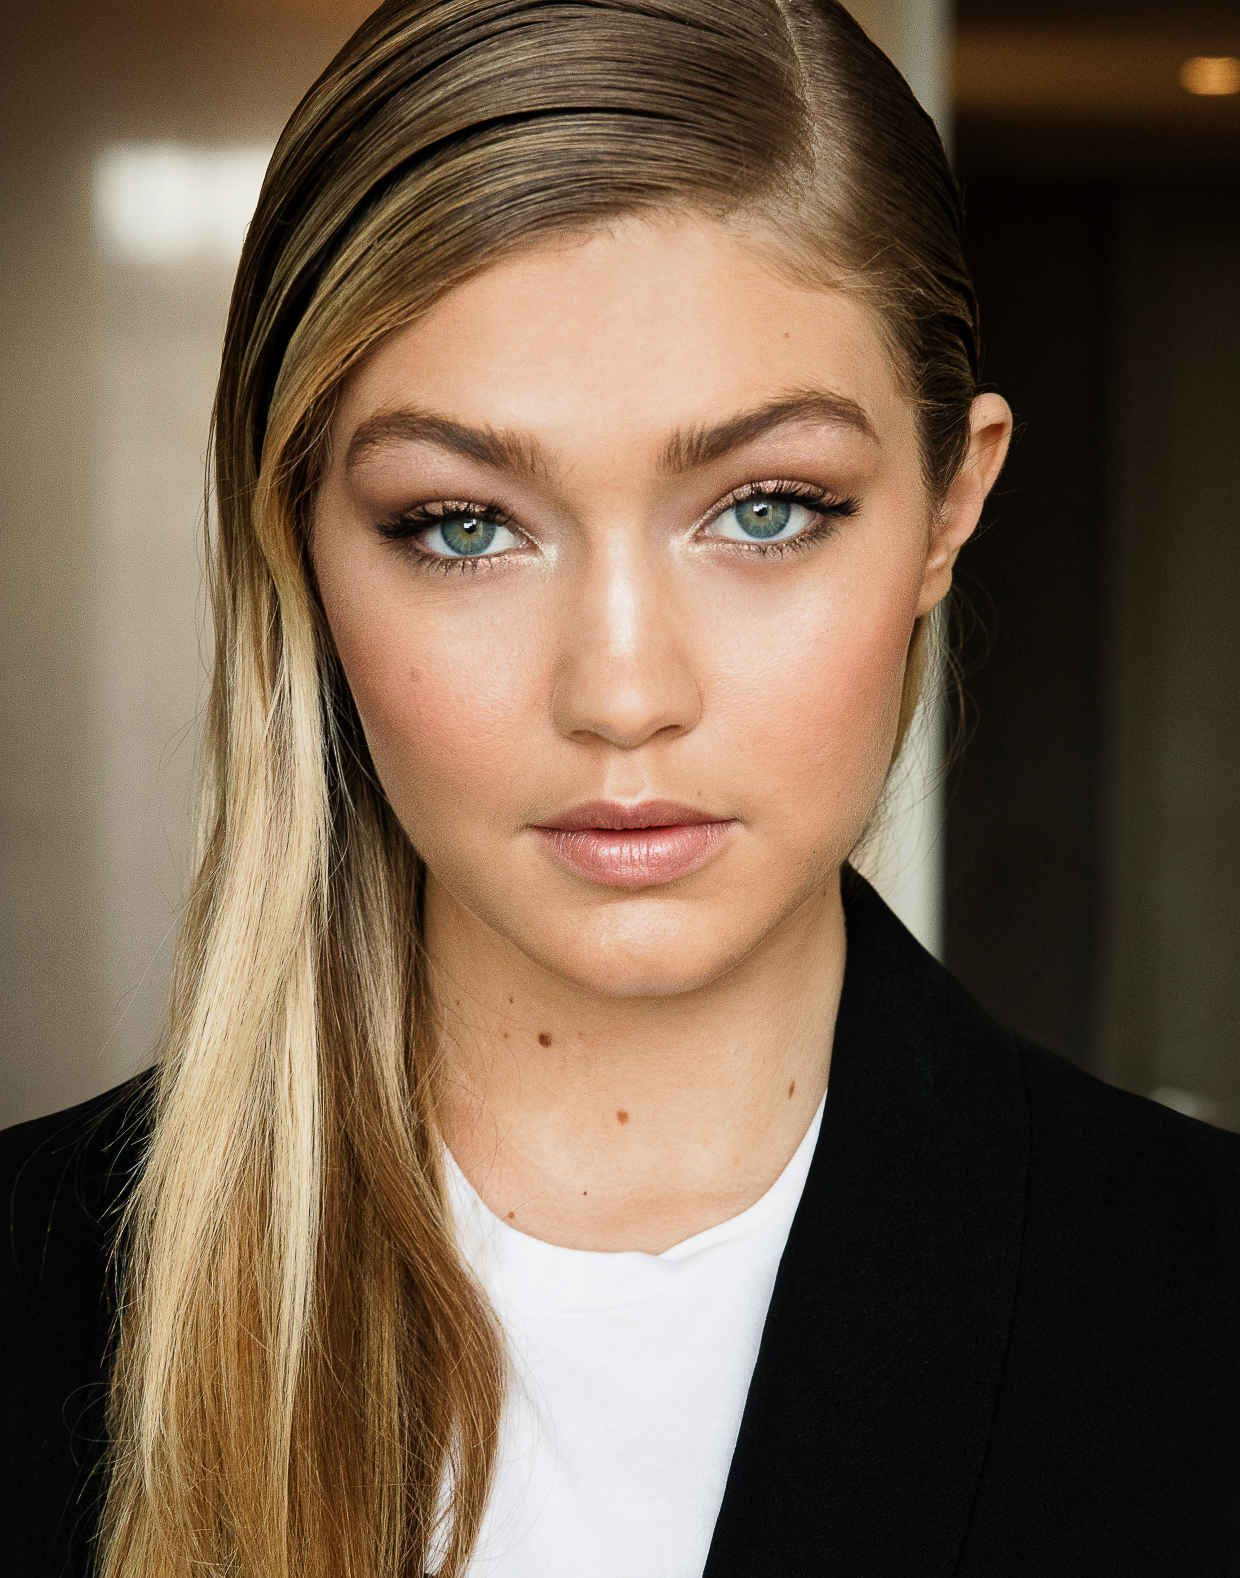 Gigi Hadid in Maybelline makeup deftly applied by Maybelline pro Grace Lee. Gigi was in Toronto Sunday night to present at the Much Music Video Awards.